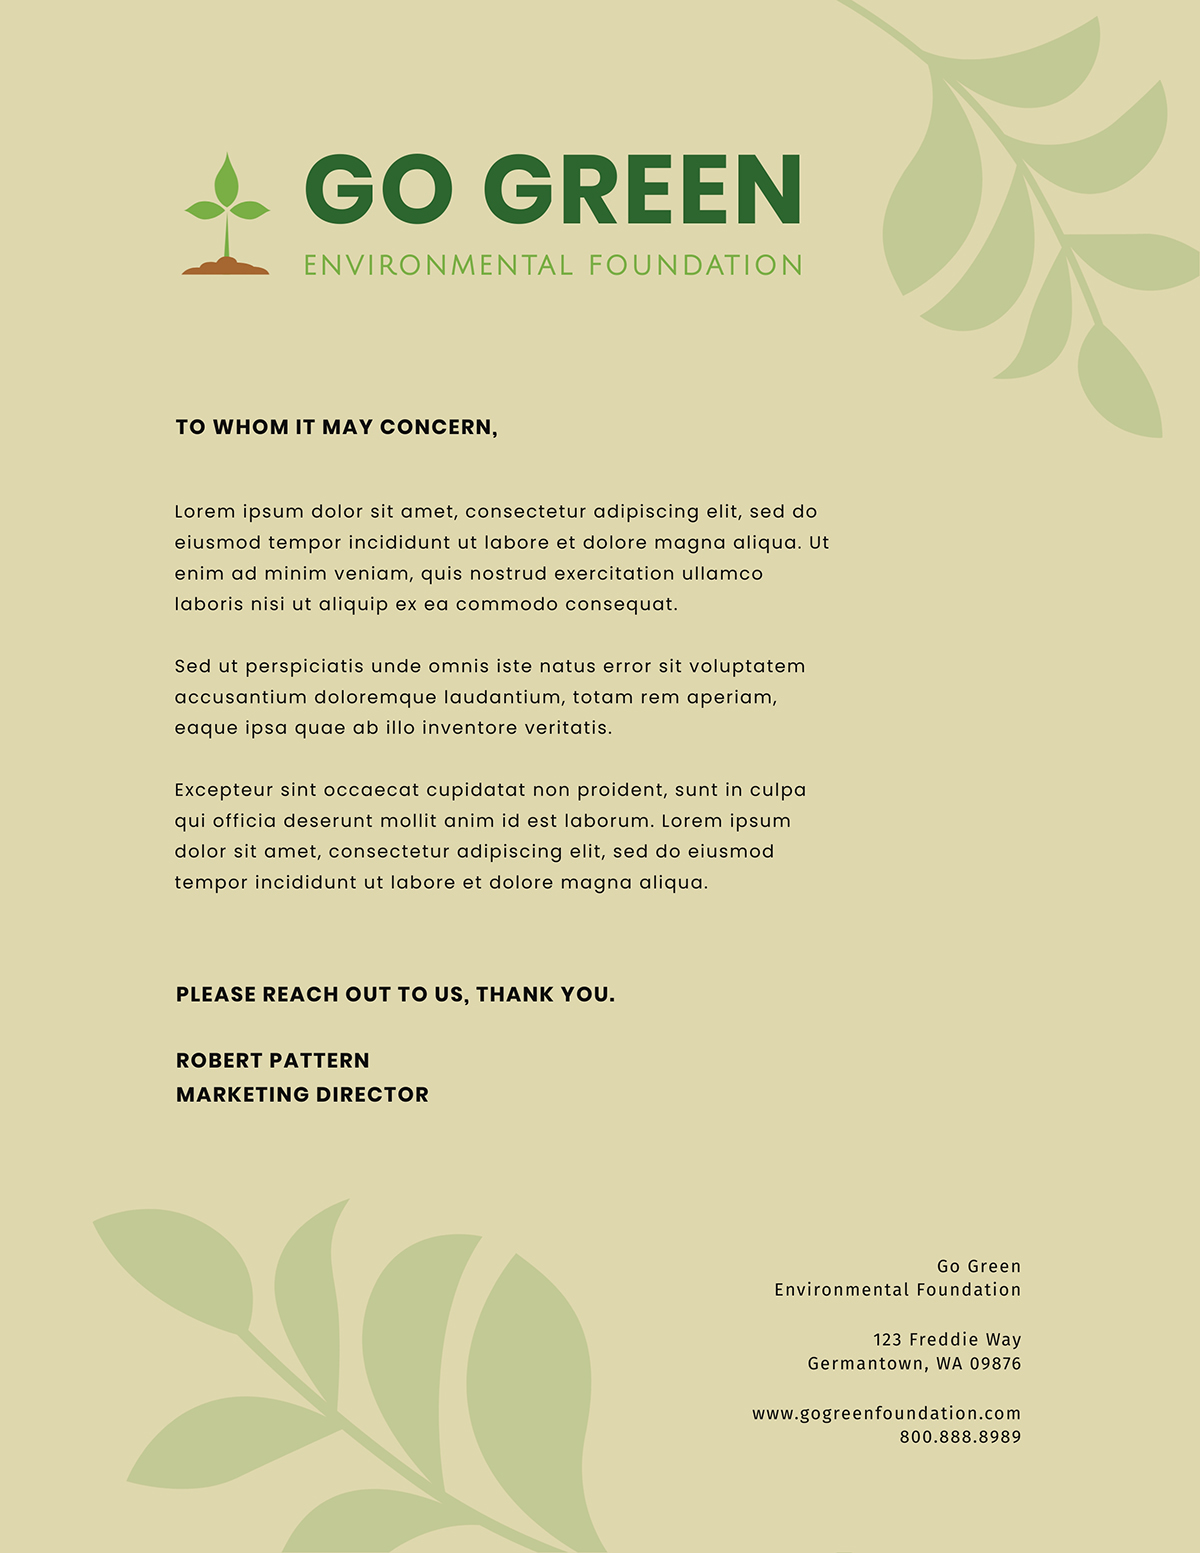 A green, nature-focused business letter template available in Visme.